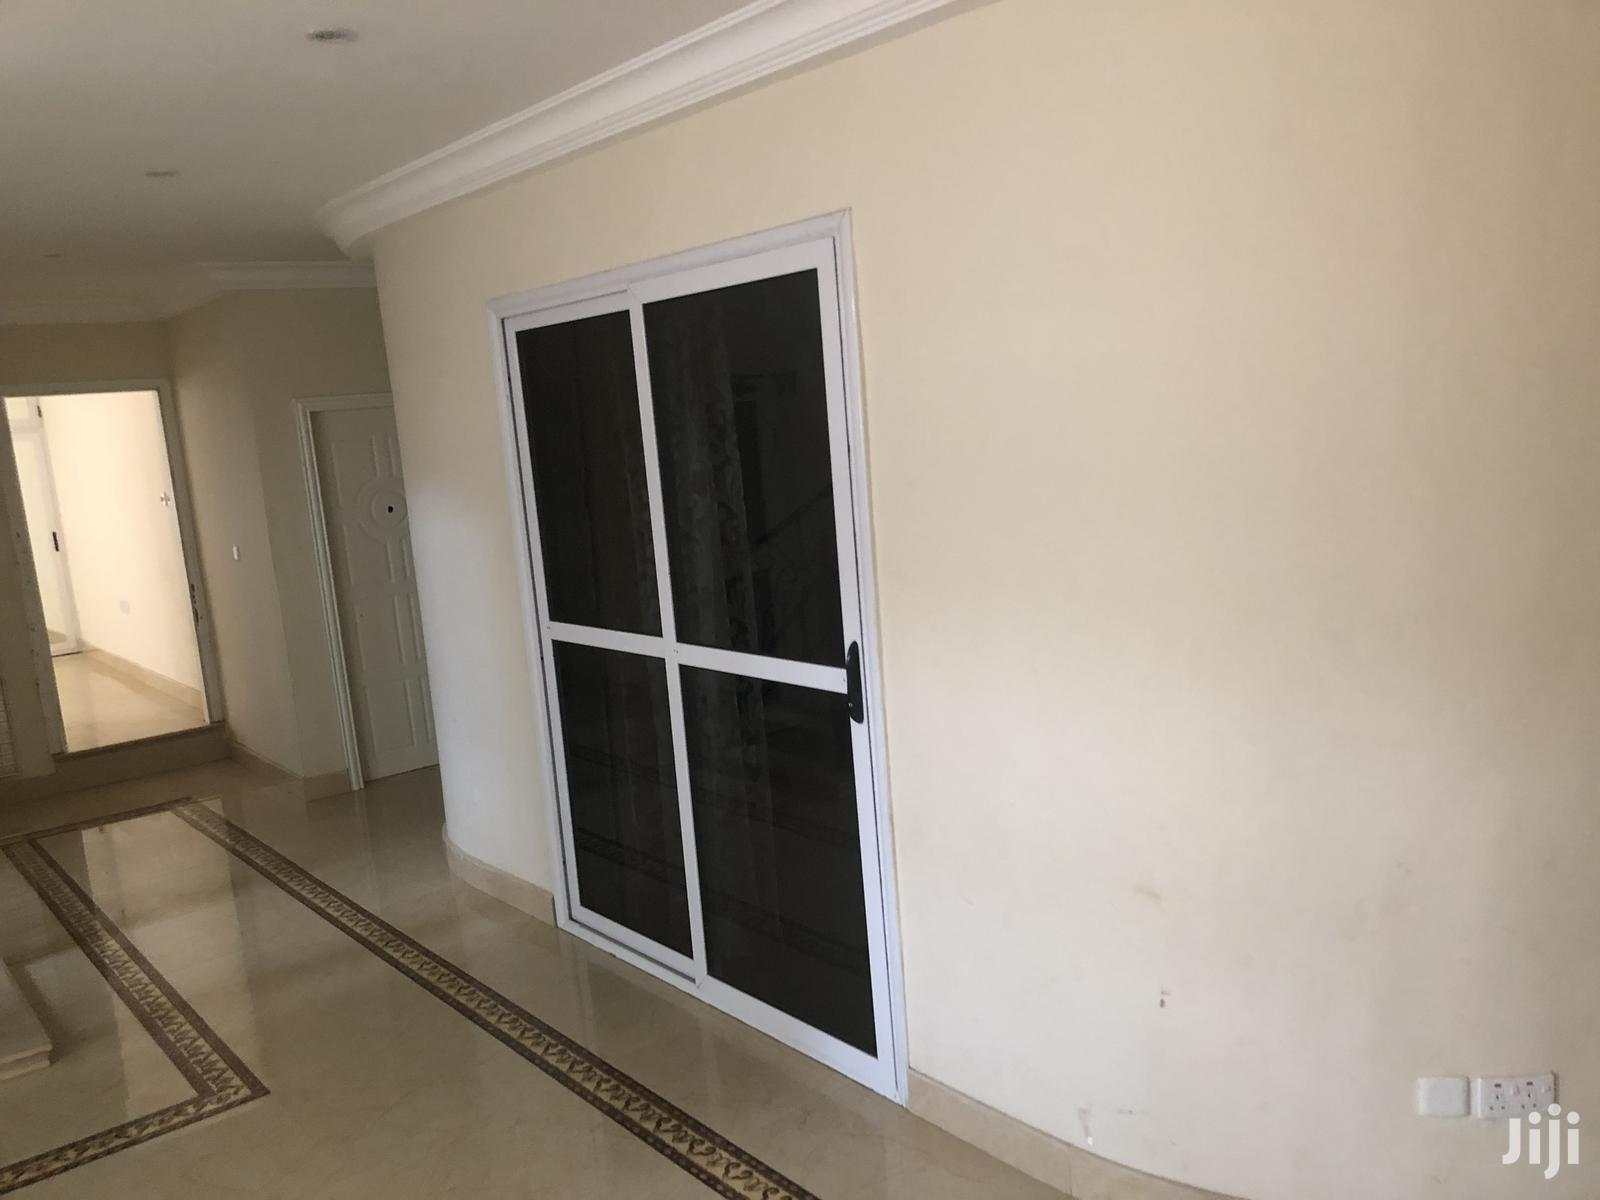 Very New 4 Bedroom in Kumasi for Rent - Entire Ground Floor | Houses & Apartments For Rent for sale in Kumasi Metropolitan, Ashanti, Ghana